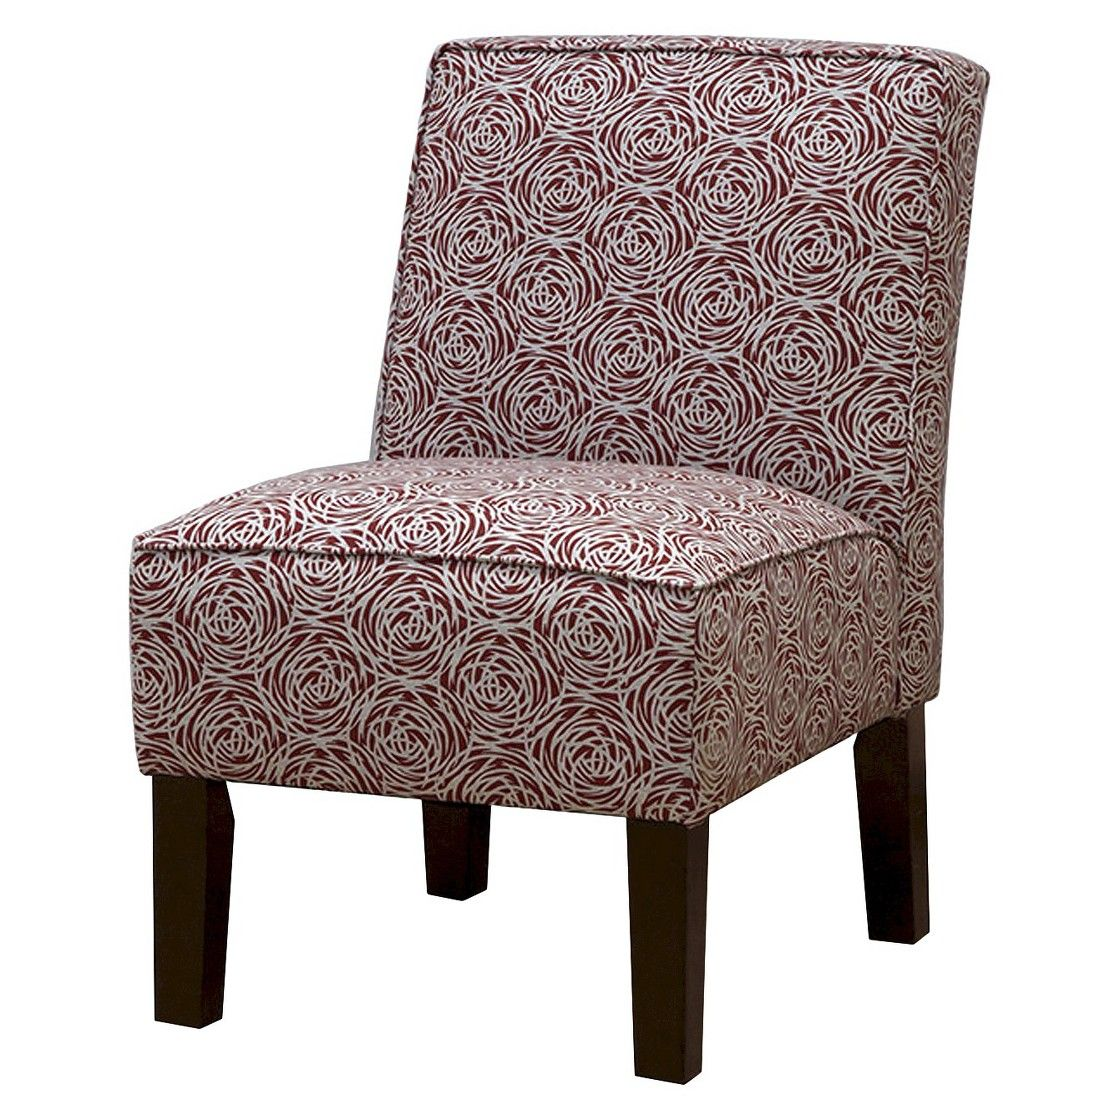 Burke Slipper Chair Prints Chair, Swivel recliner